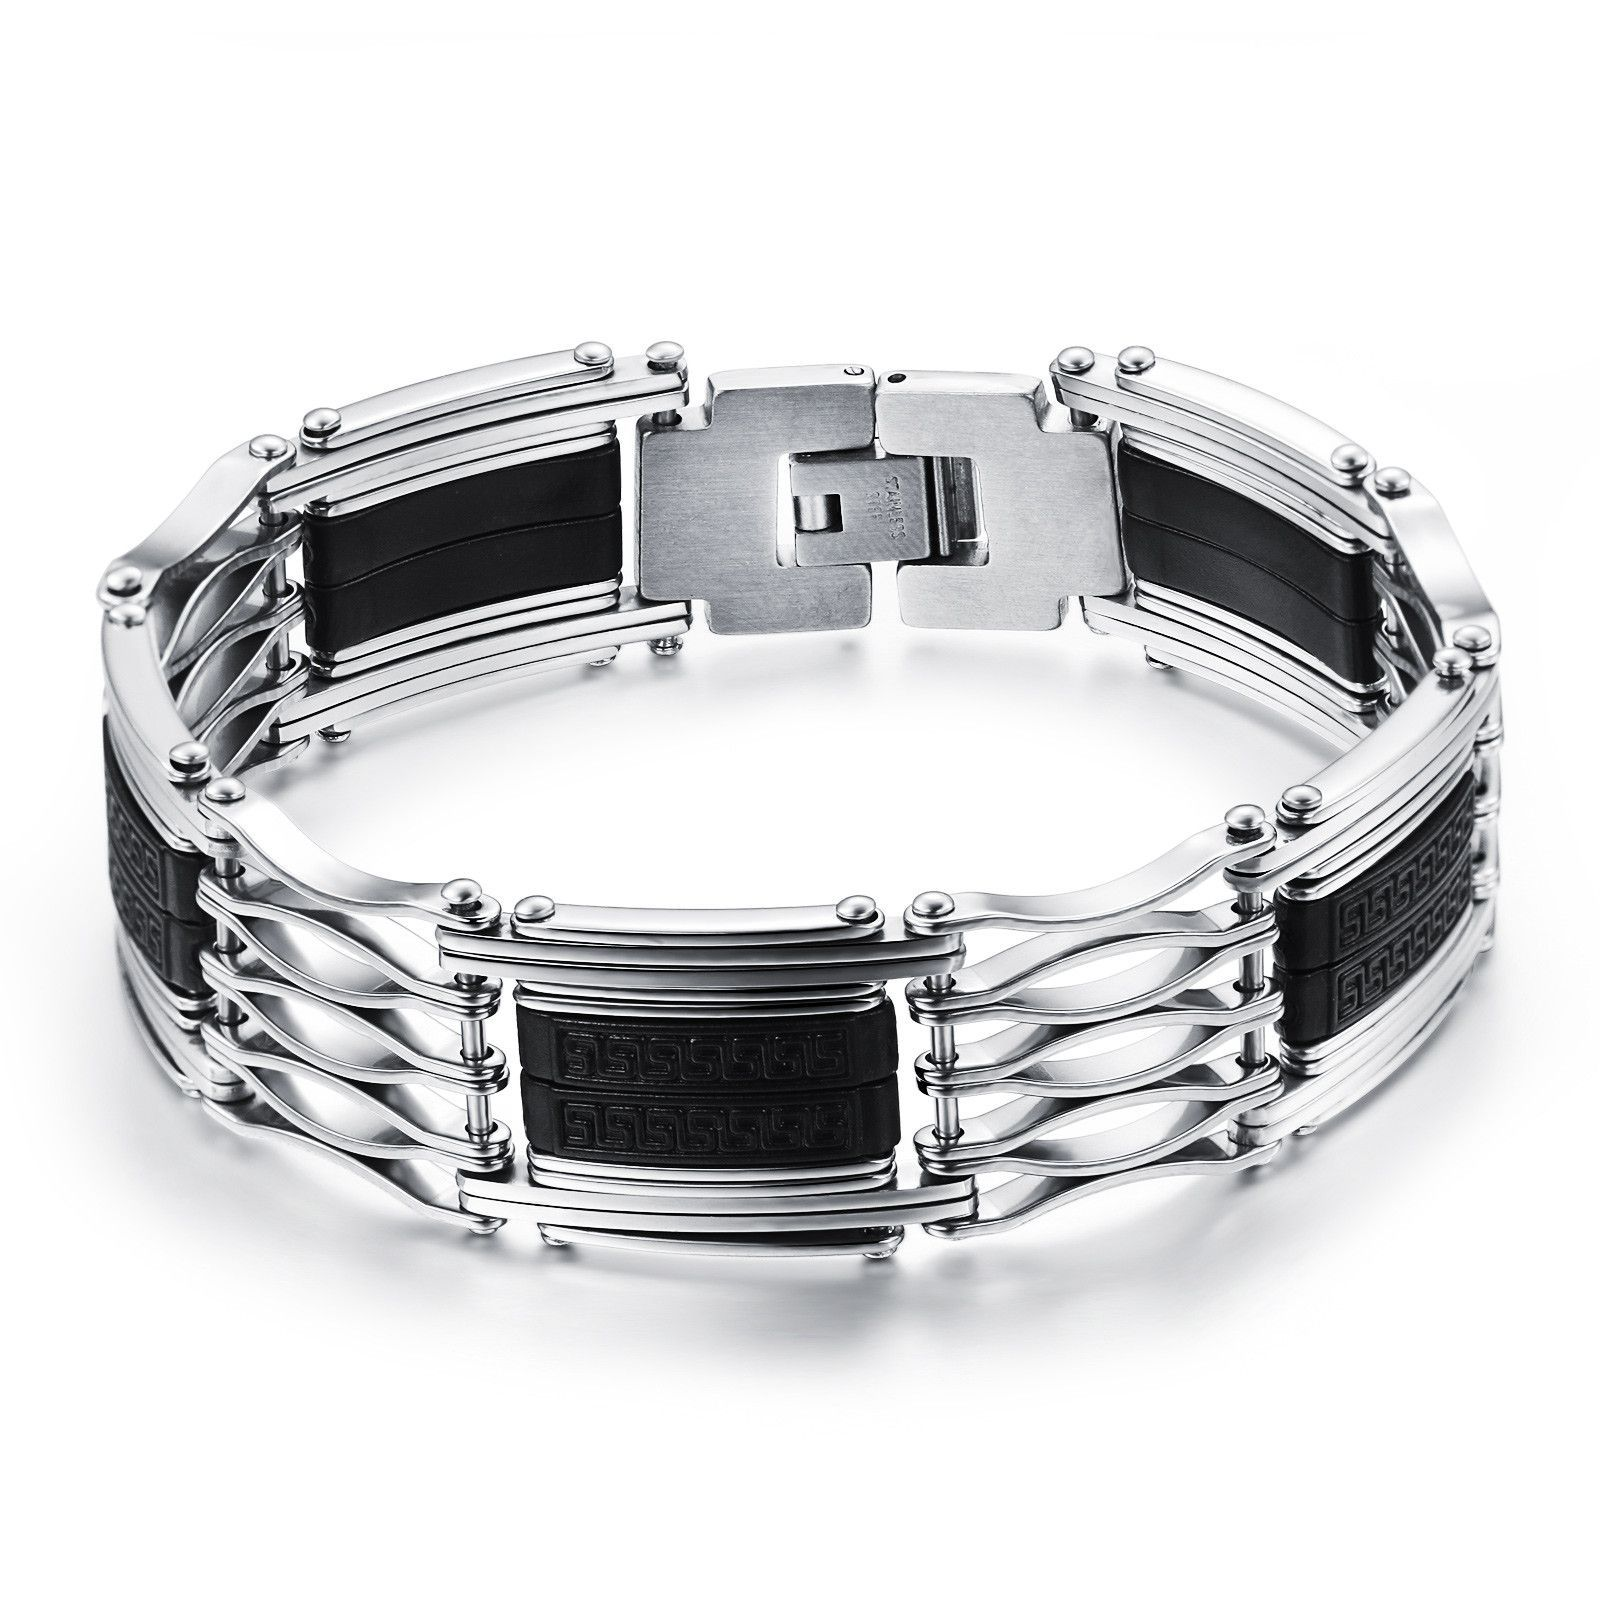 Buy silicone wrist strap with fret pattern hollow stainless steel